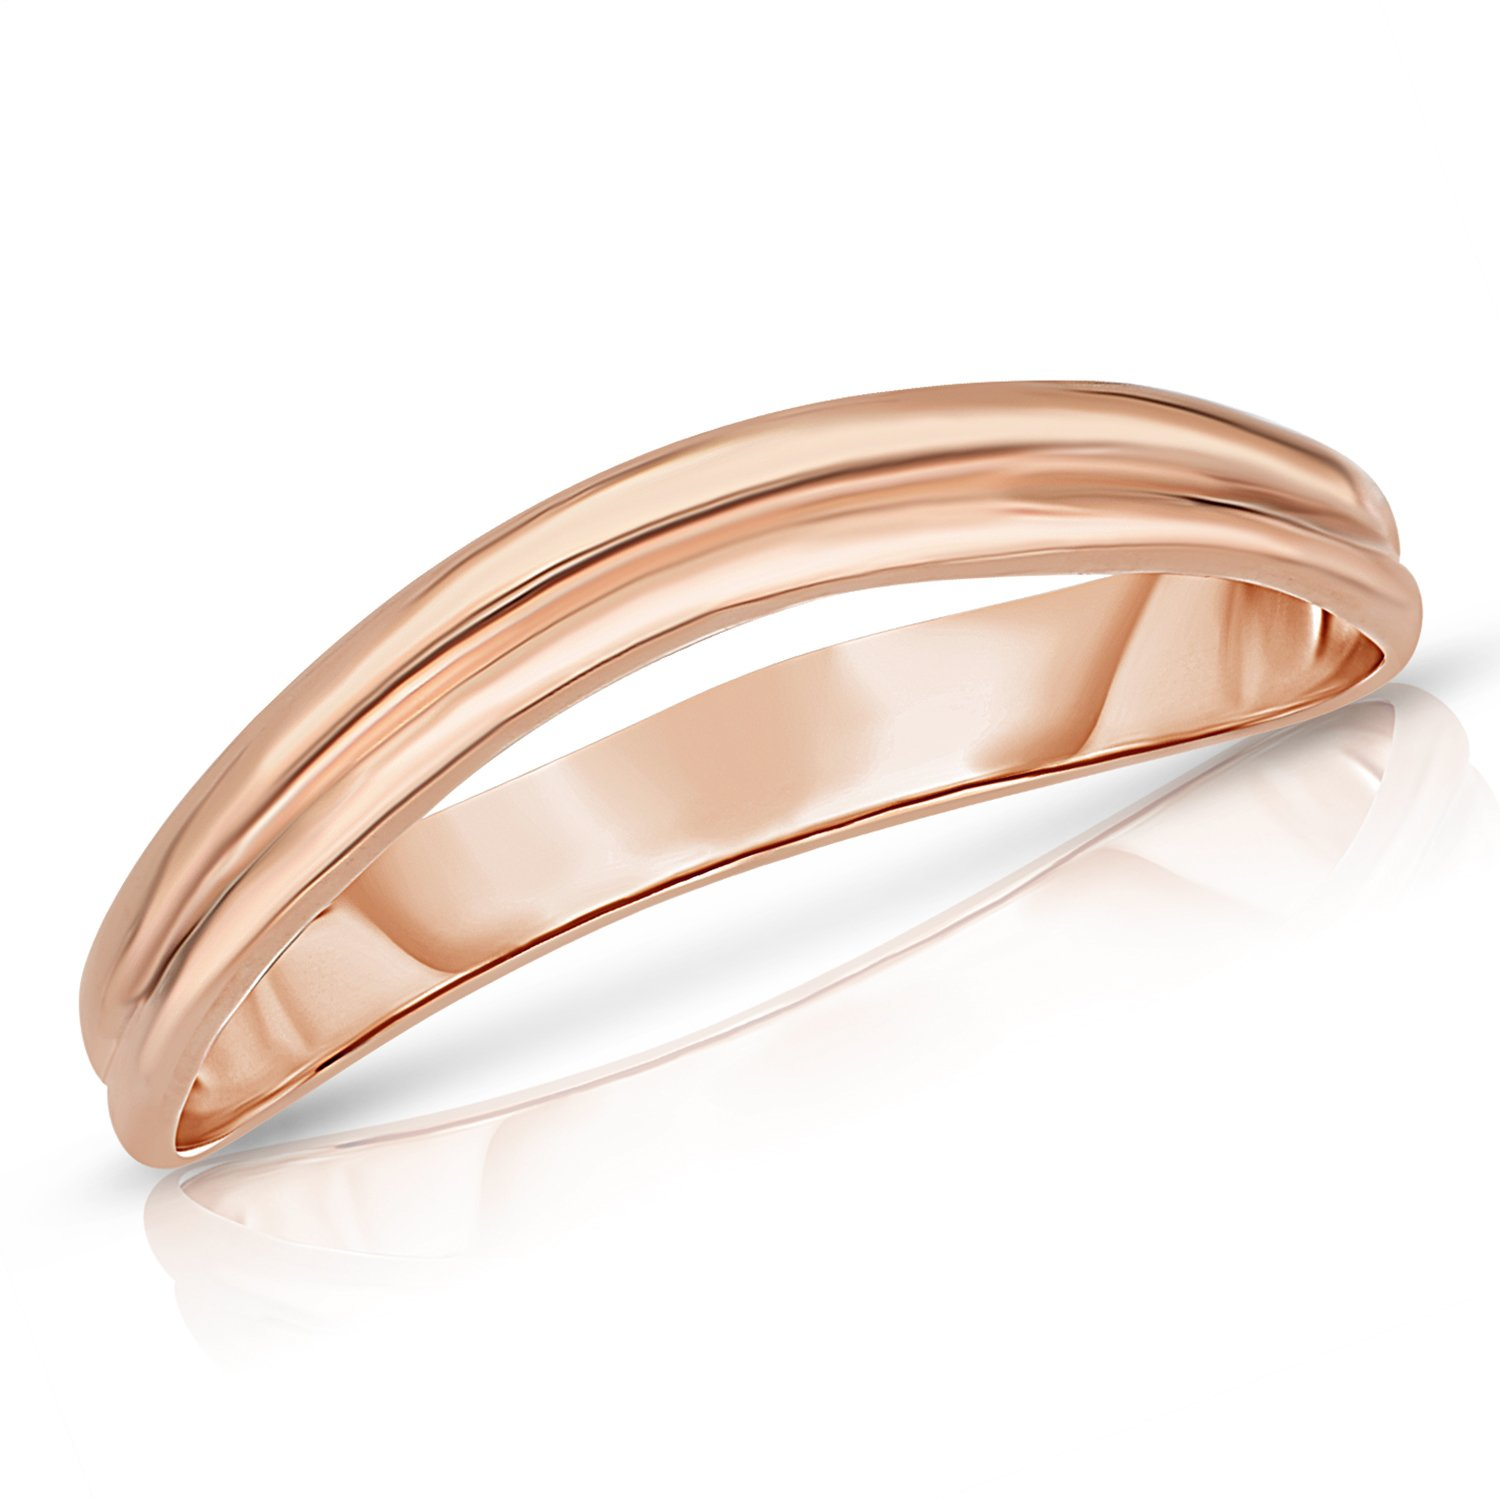 10k Fine Gold Comfort Fit Curved Double Wave Thumb Ring (3mm) TRD